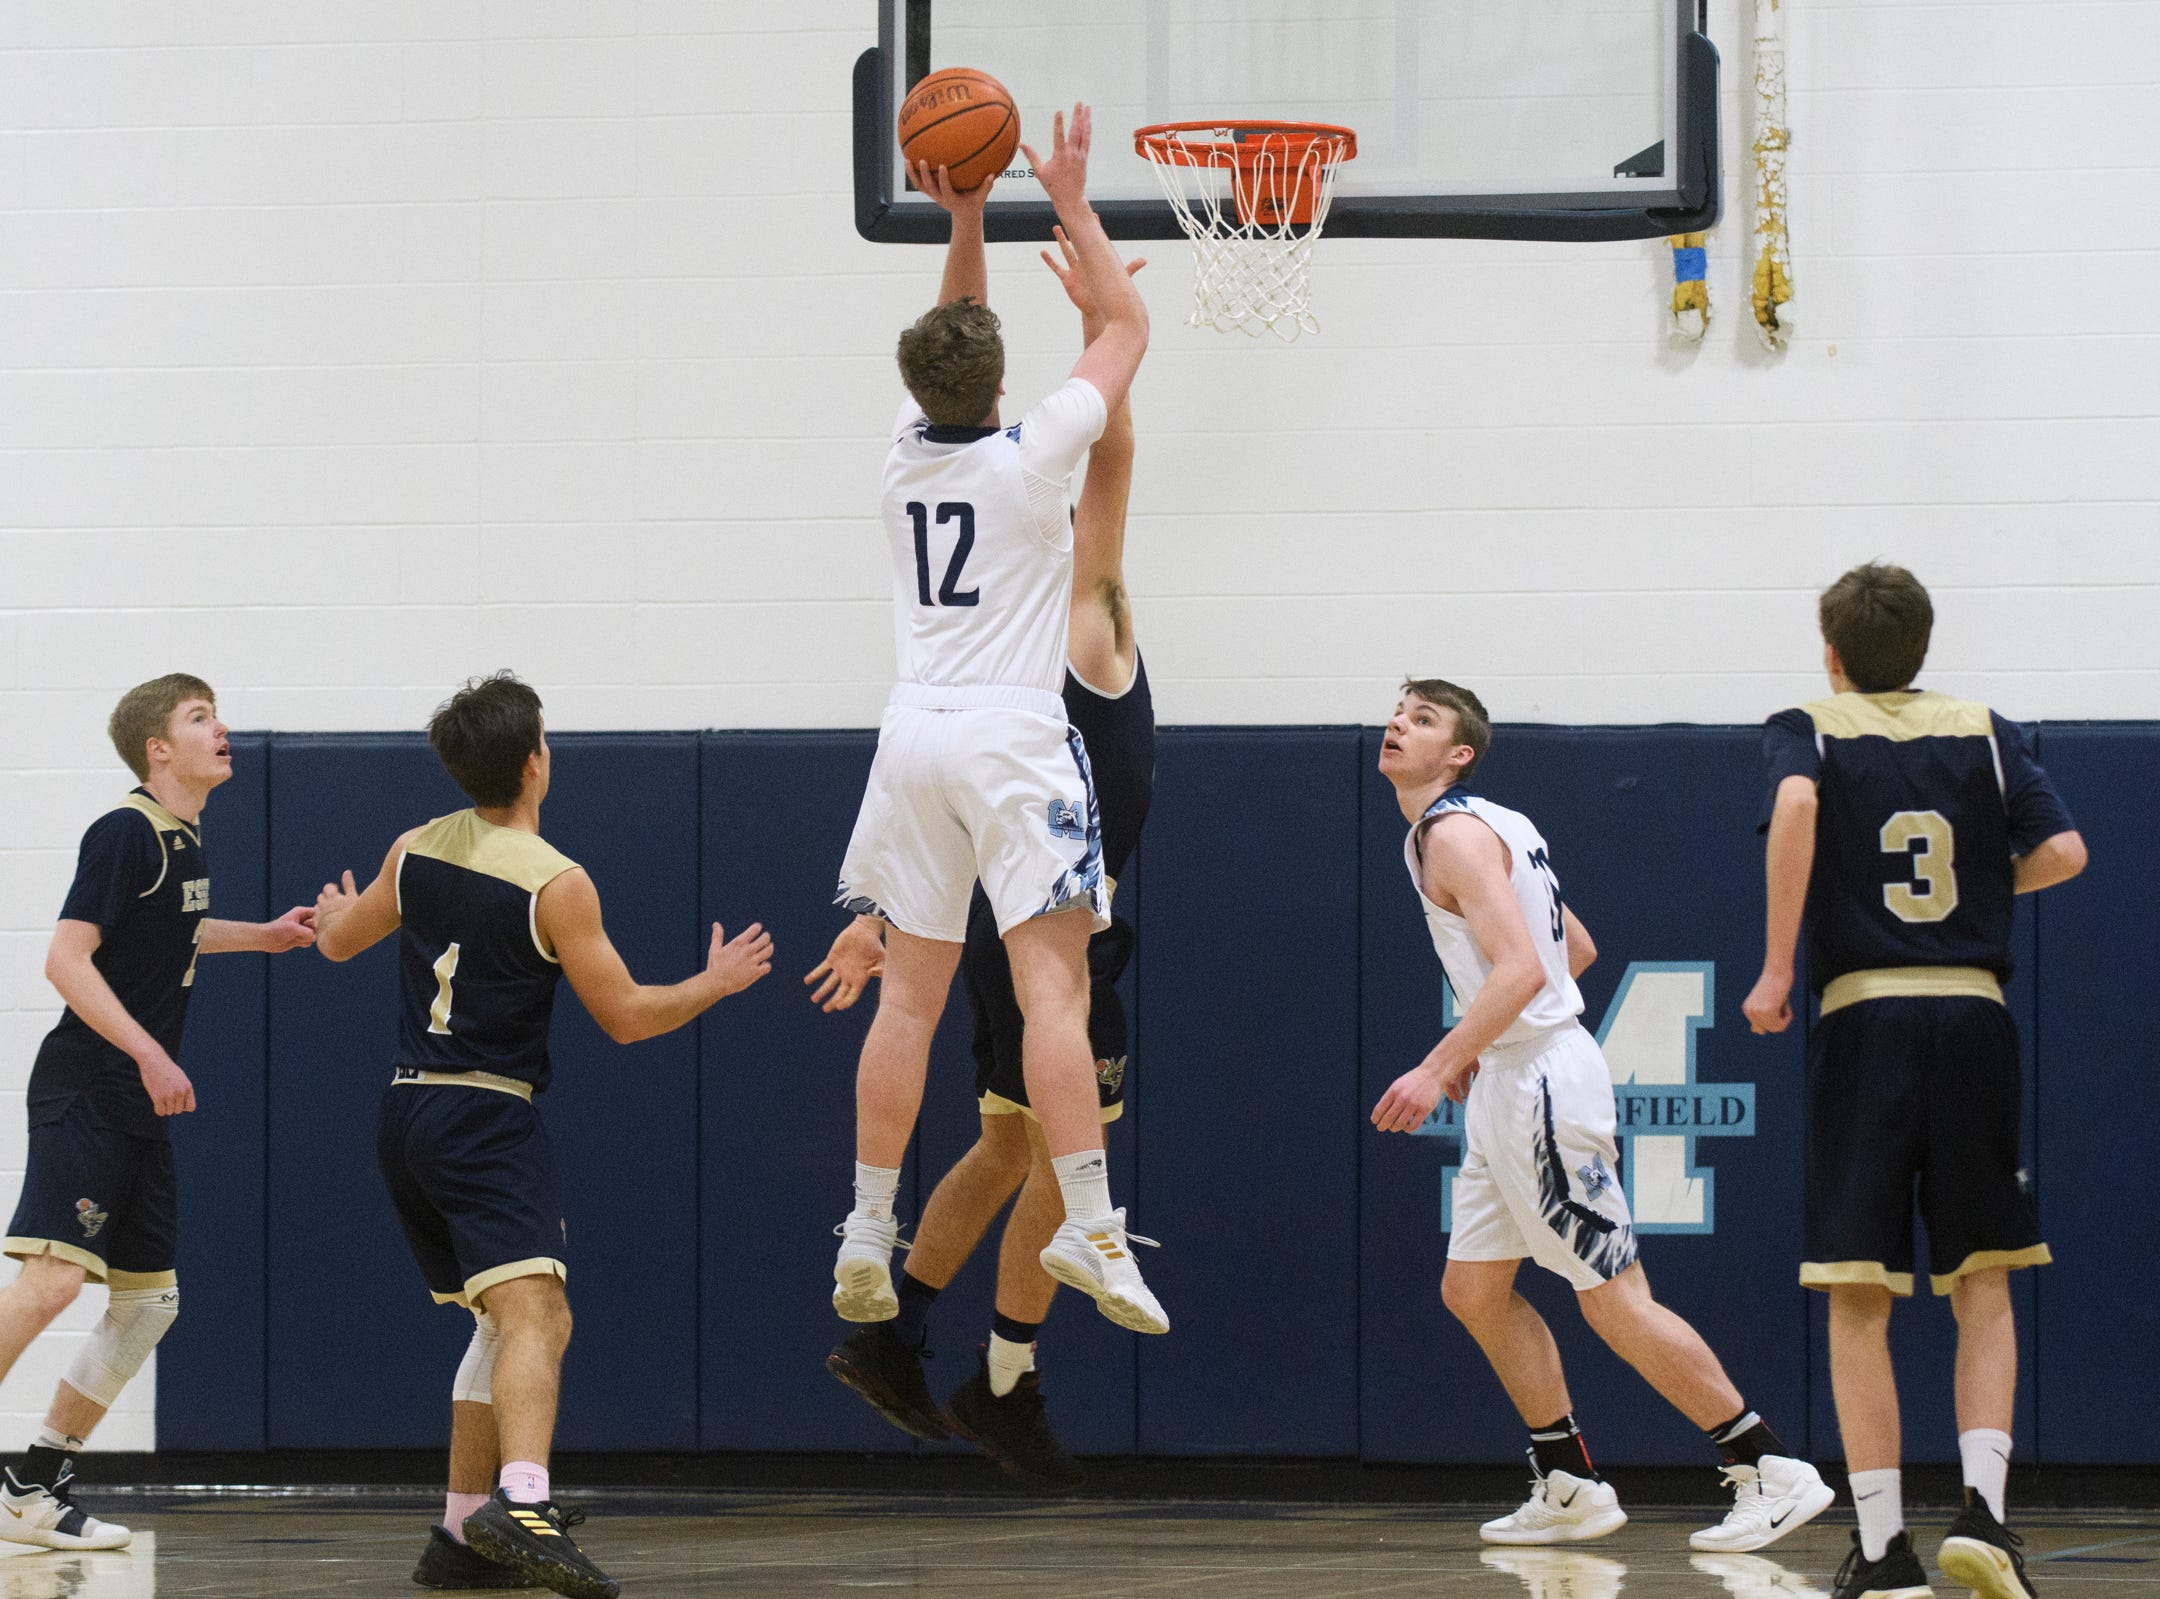 MMU's Asa Carlson (12) shoots the ball during the boys basketball game between the Essex Hornets and the Mount Mansfield Cougars at MMU High School on Wednesday night February 13, 2019 in Jericho, Vermont.